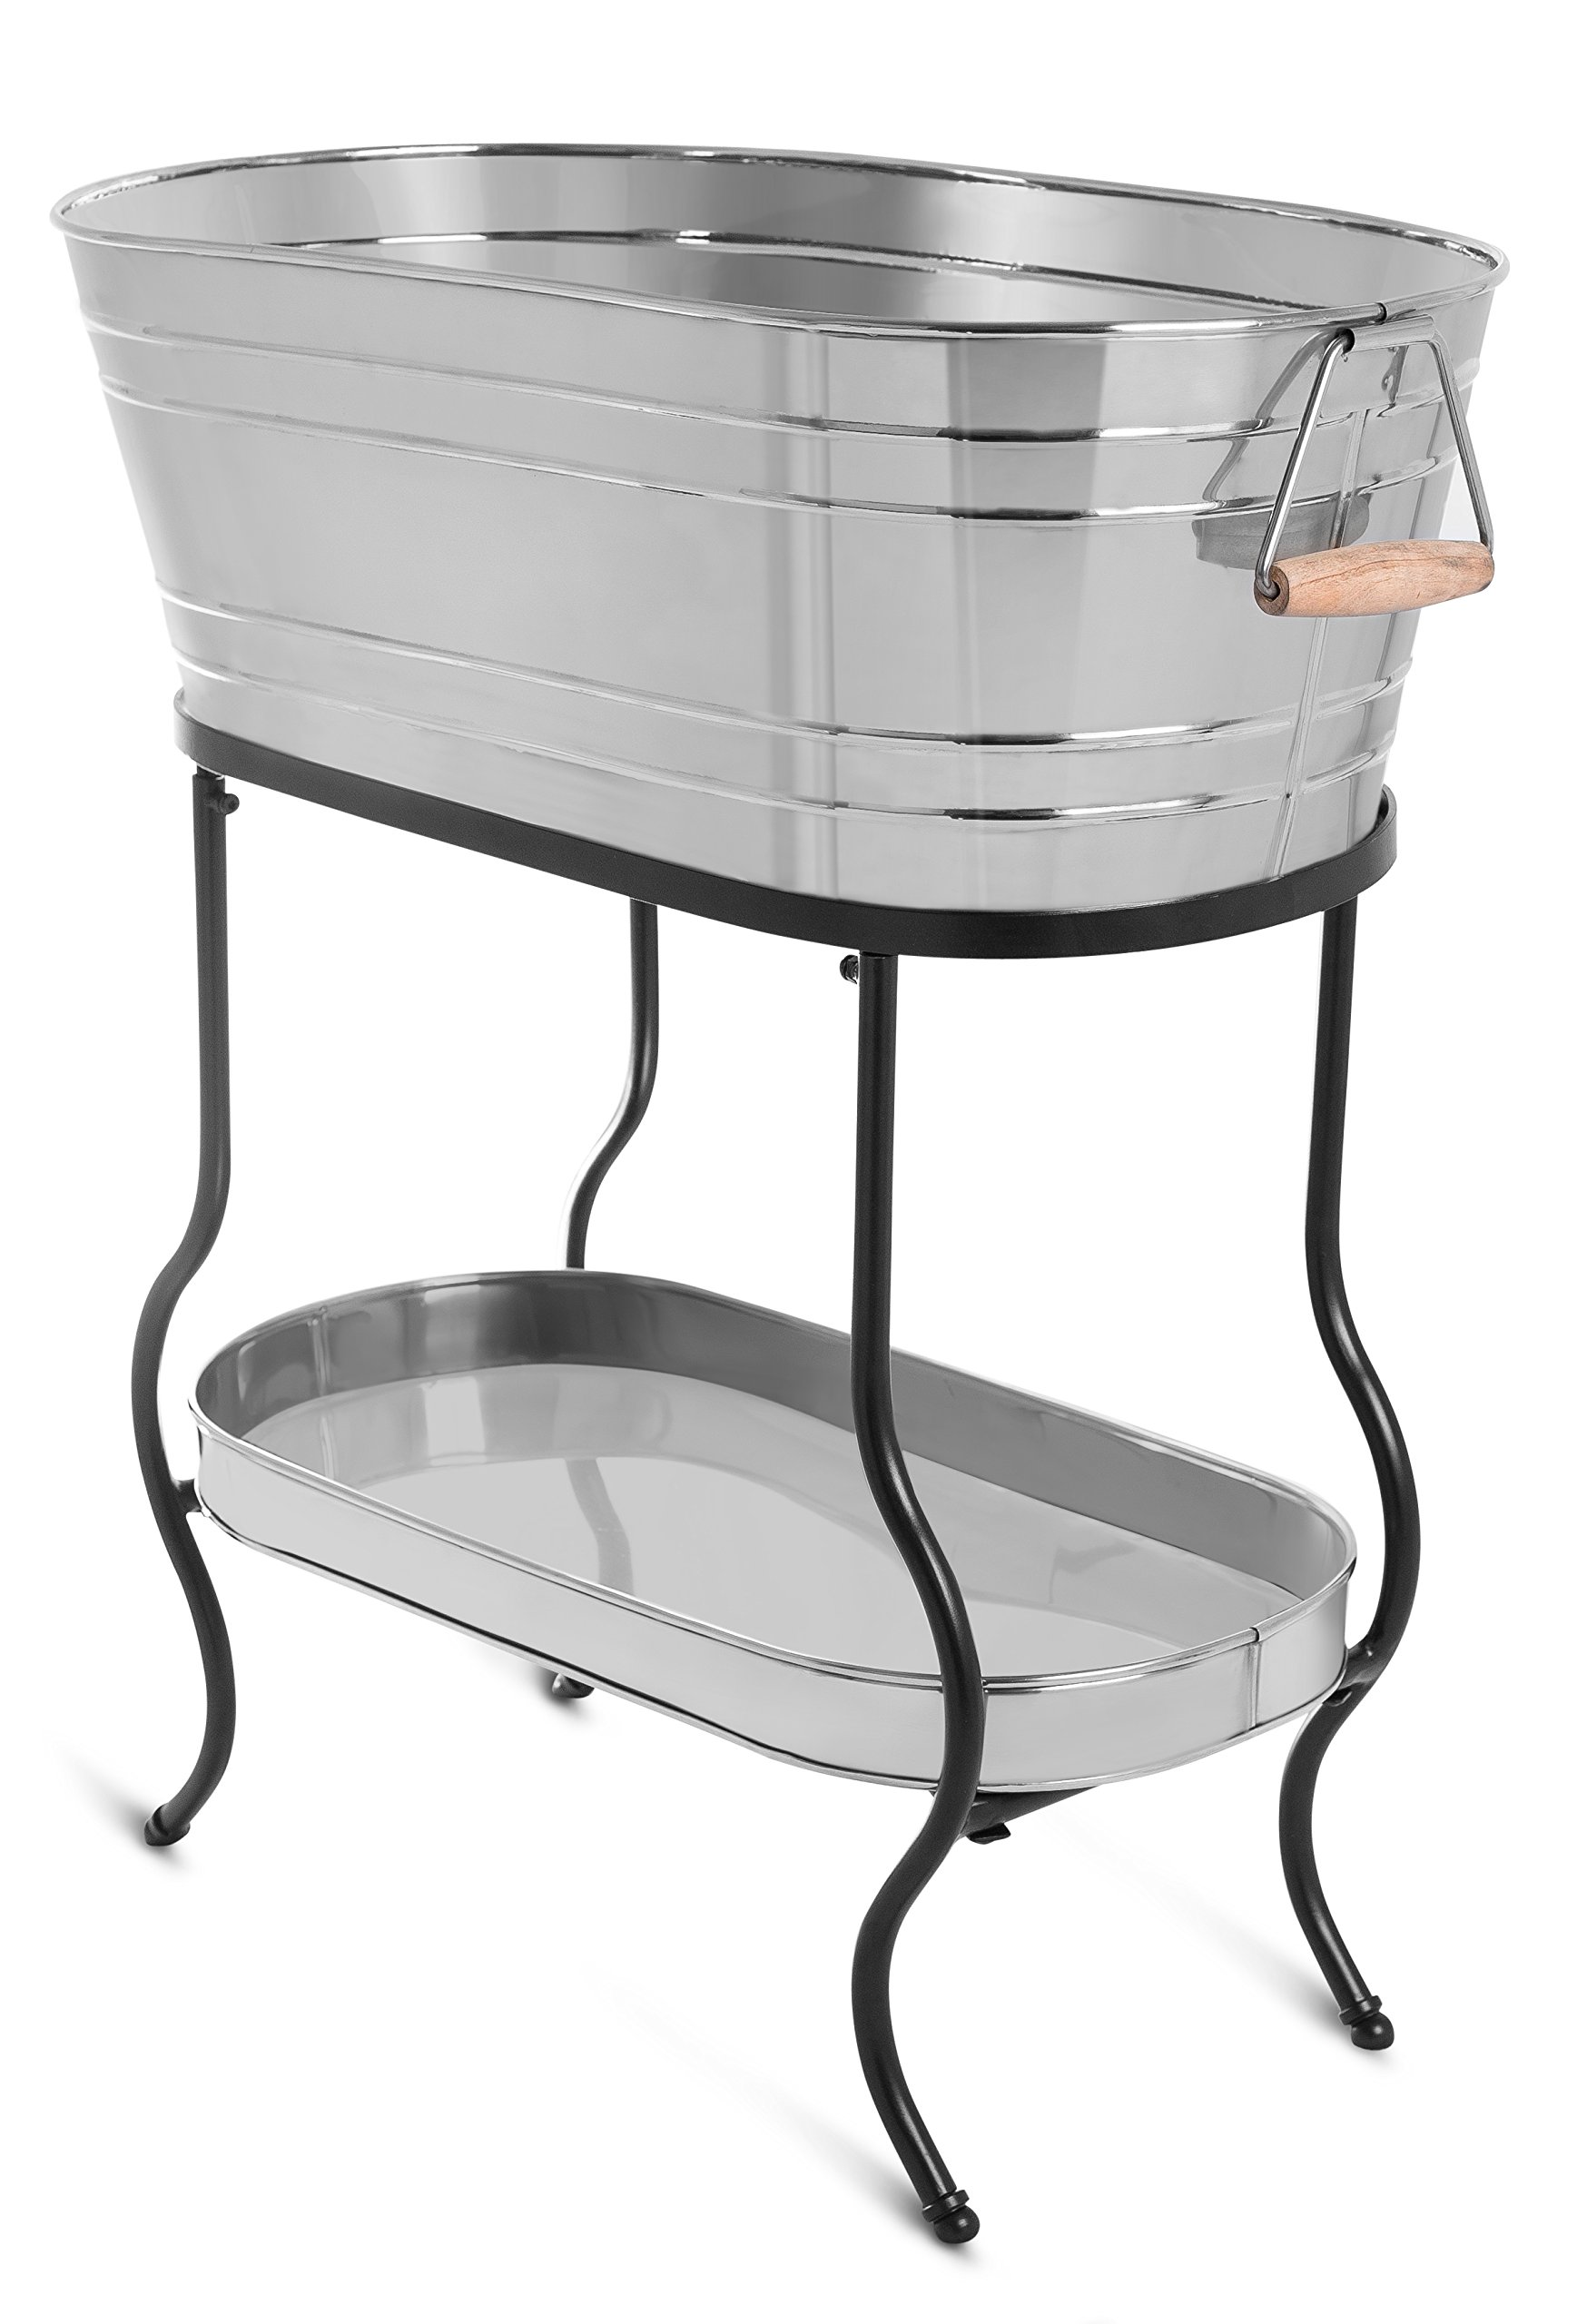 BirdRock Home Stainless Steel Beverage Tub with Stand - Oval - Bottom Tray - Party Drink Holder - Wooden Handles - Outdoor or Indoor Use - Free Standing by BIRDROCK HOME